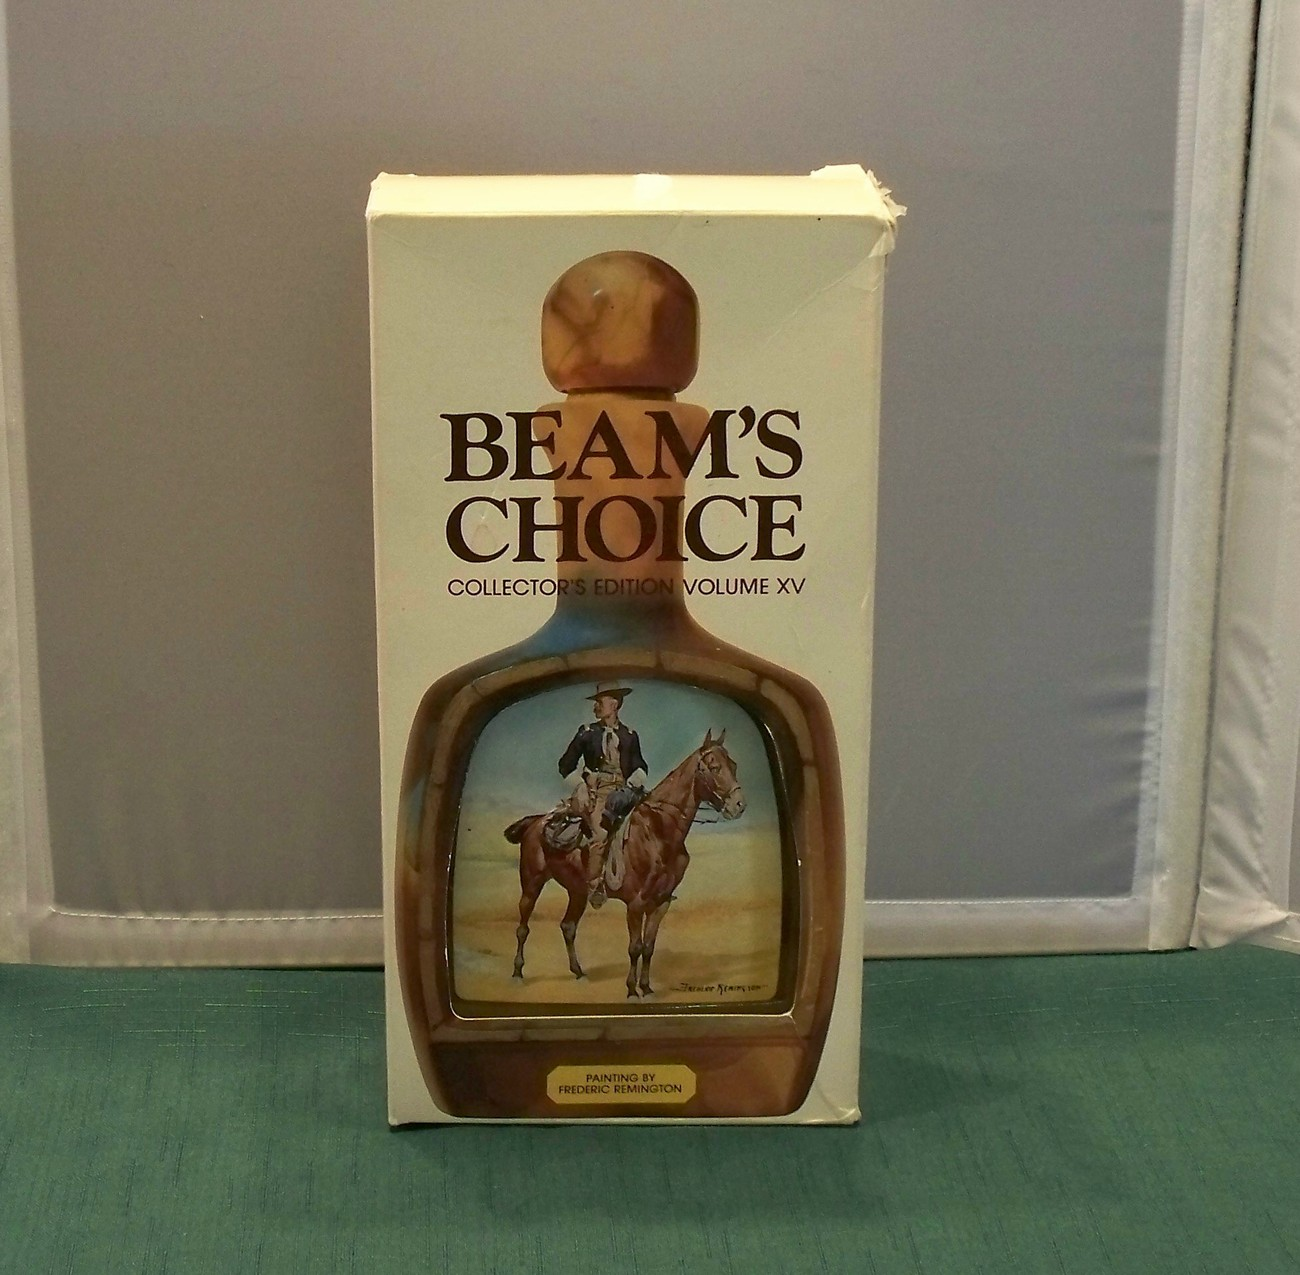 Beam's Choice Remington Decanter Original Box Empty VGC